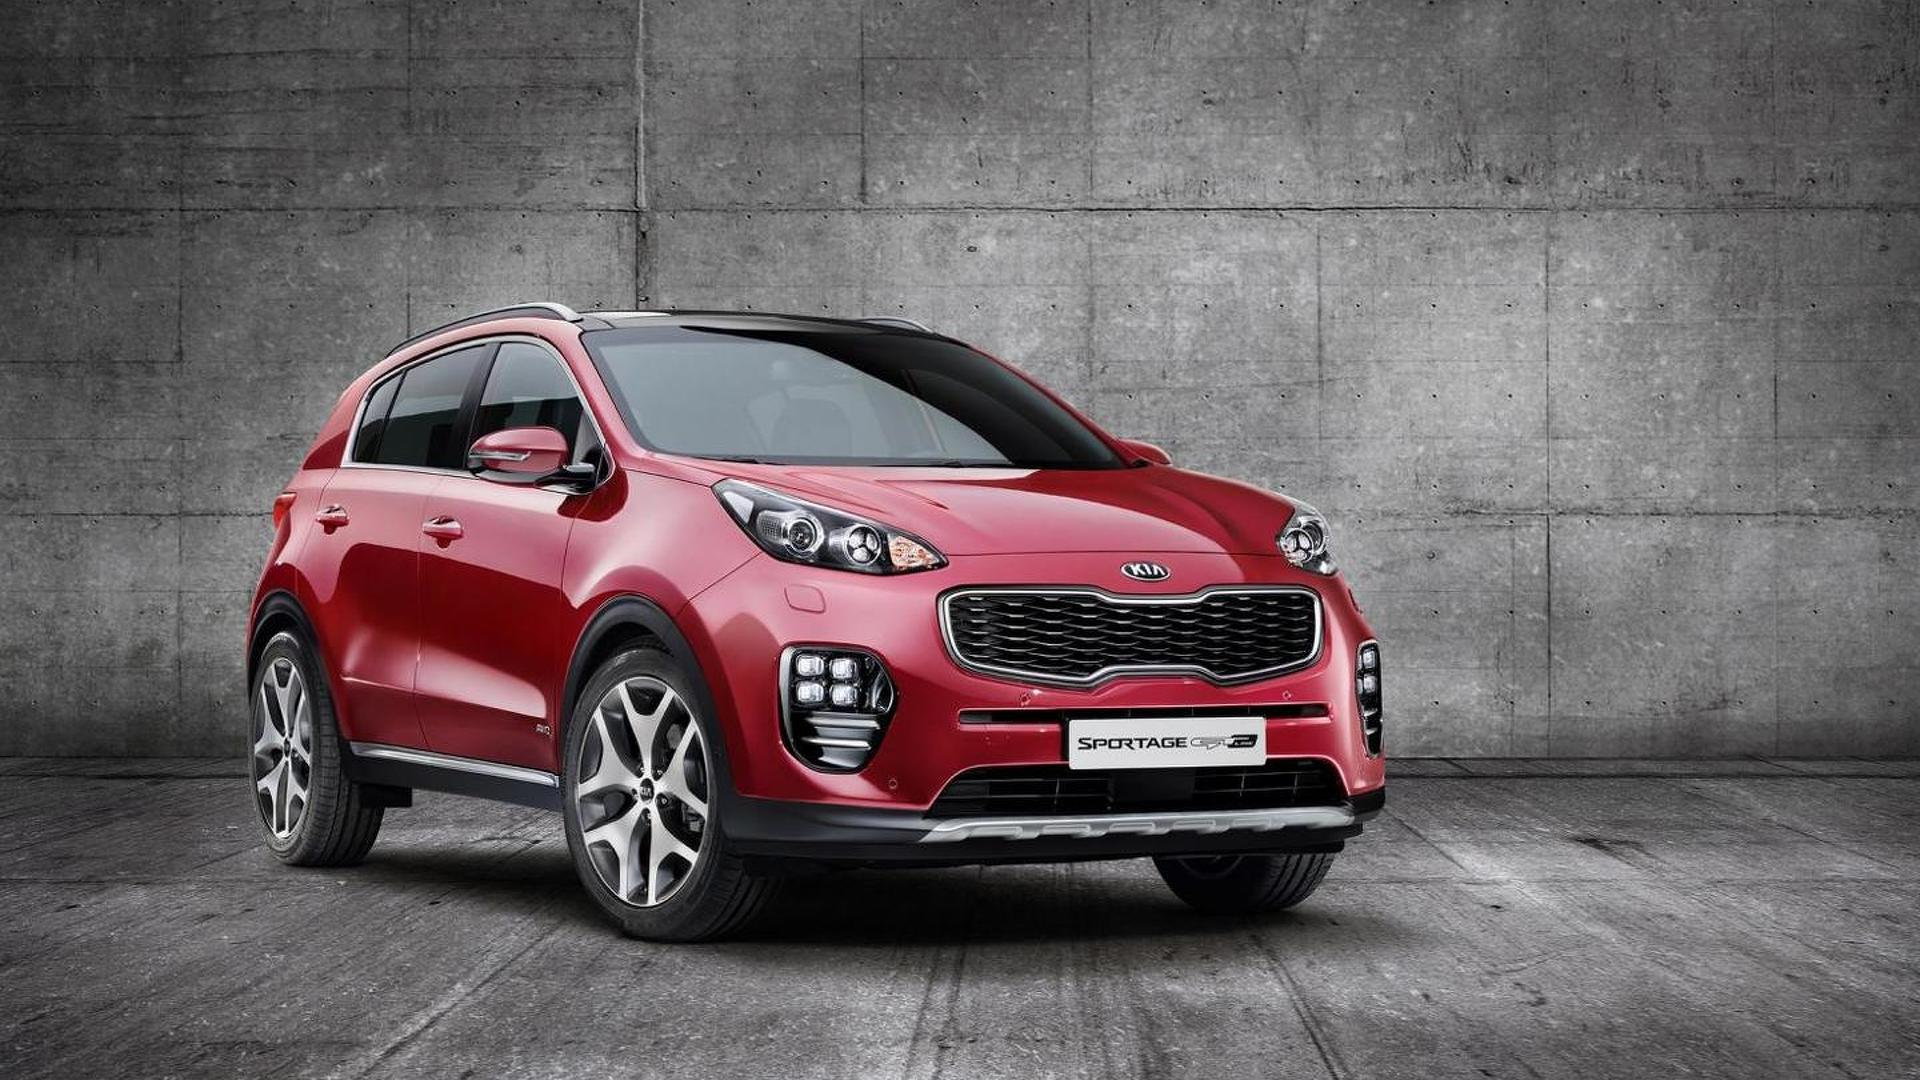 Kia Sportage first official images released